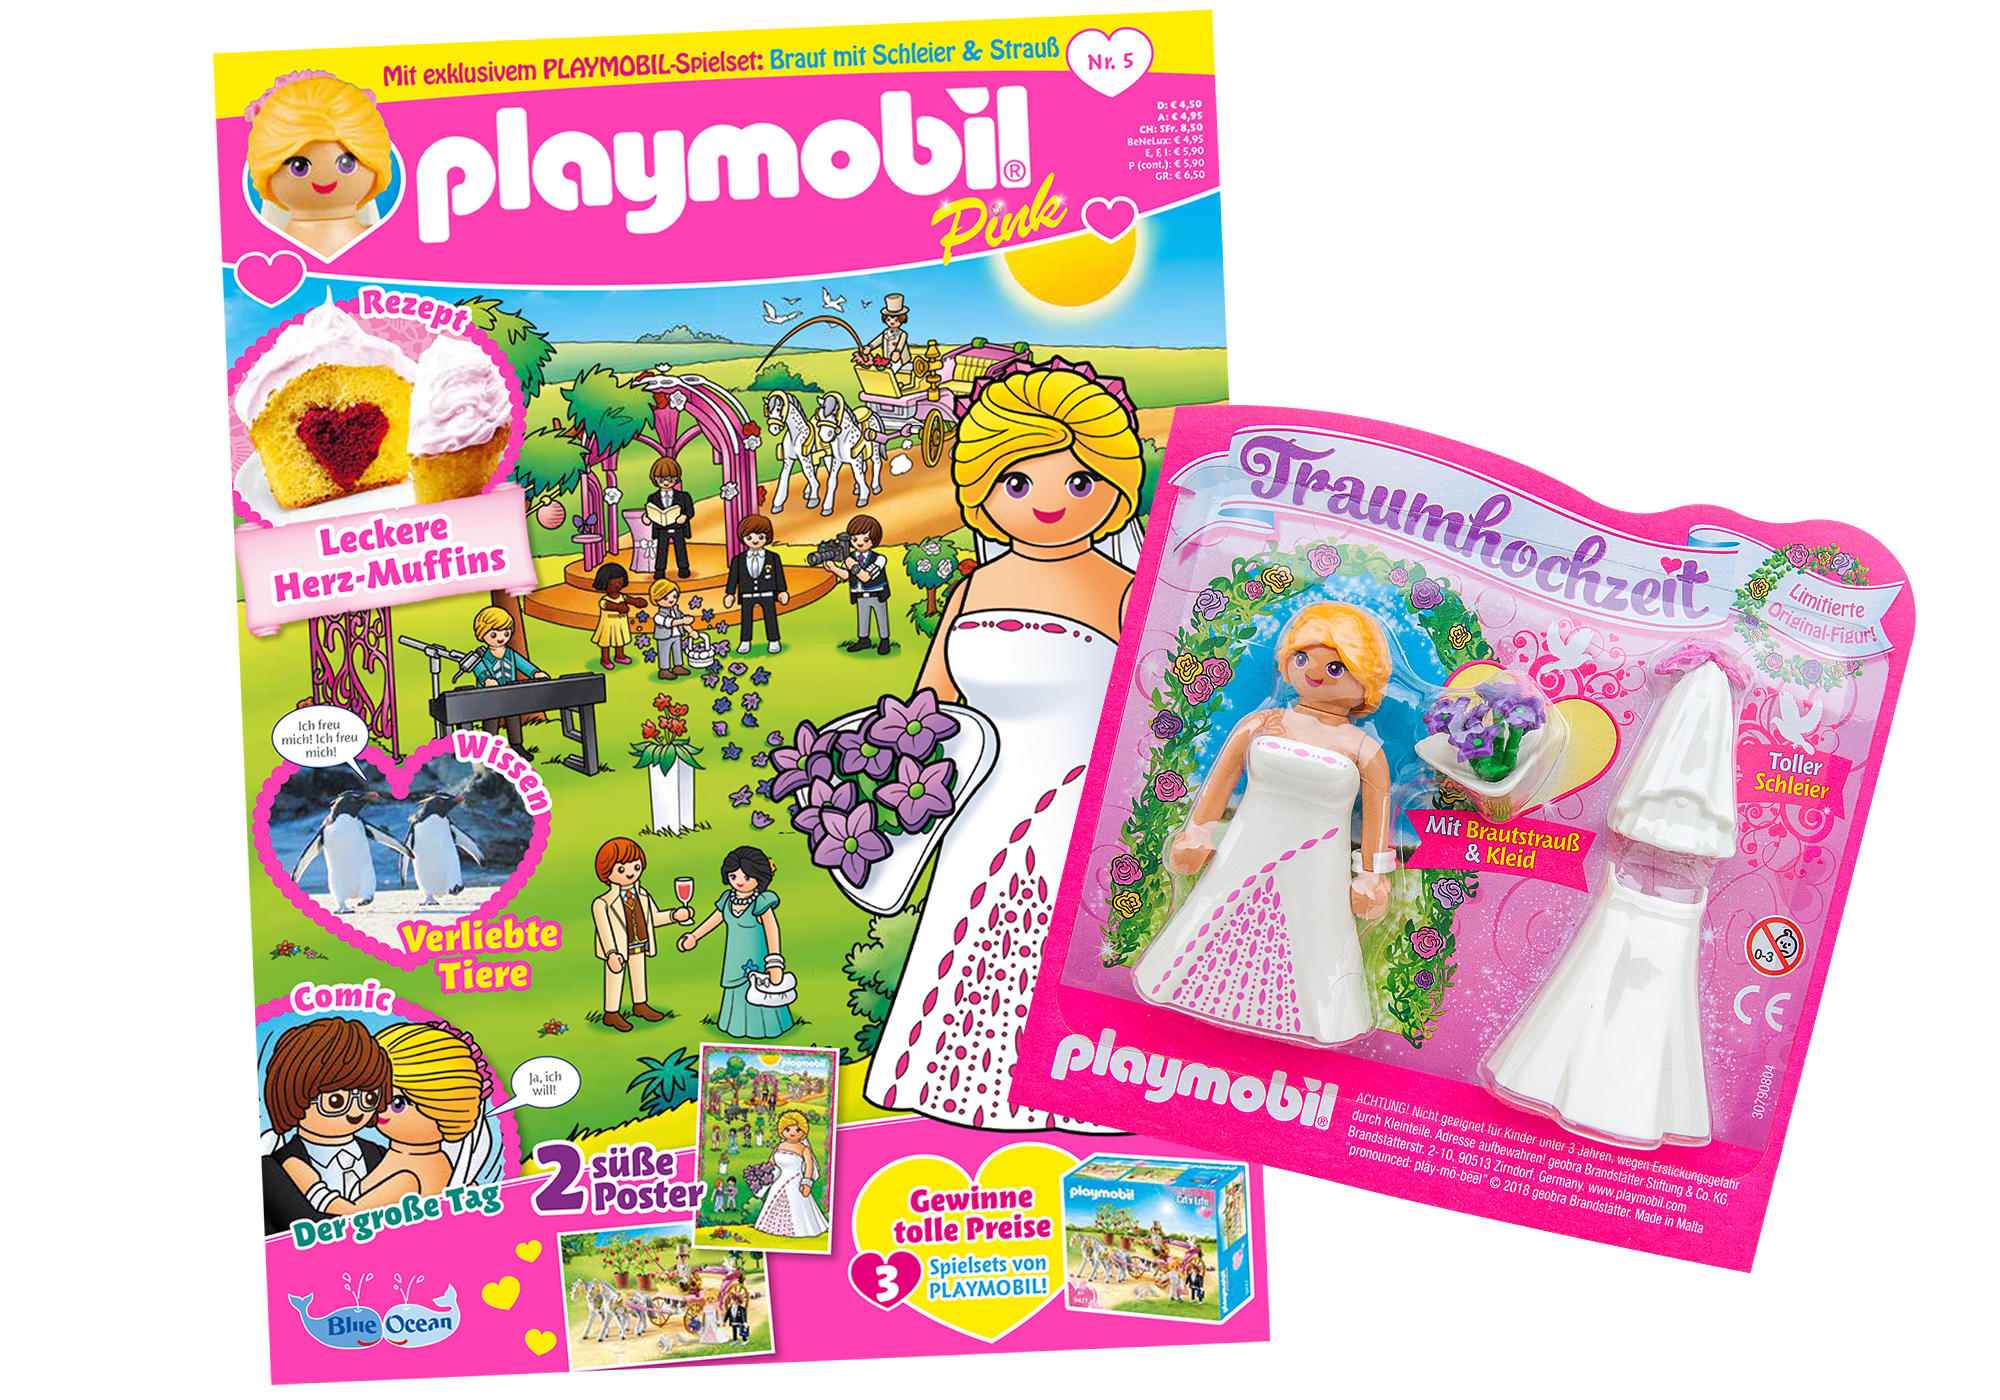 http://media.playmobil.com/i/playmobil/80610_product_detail